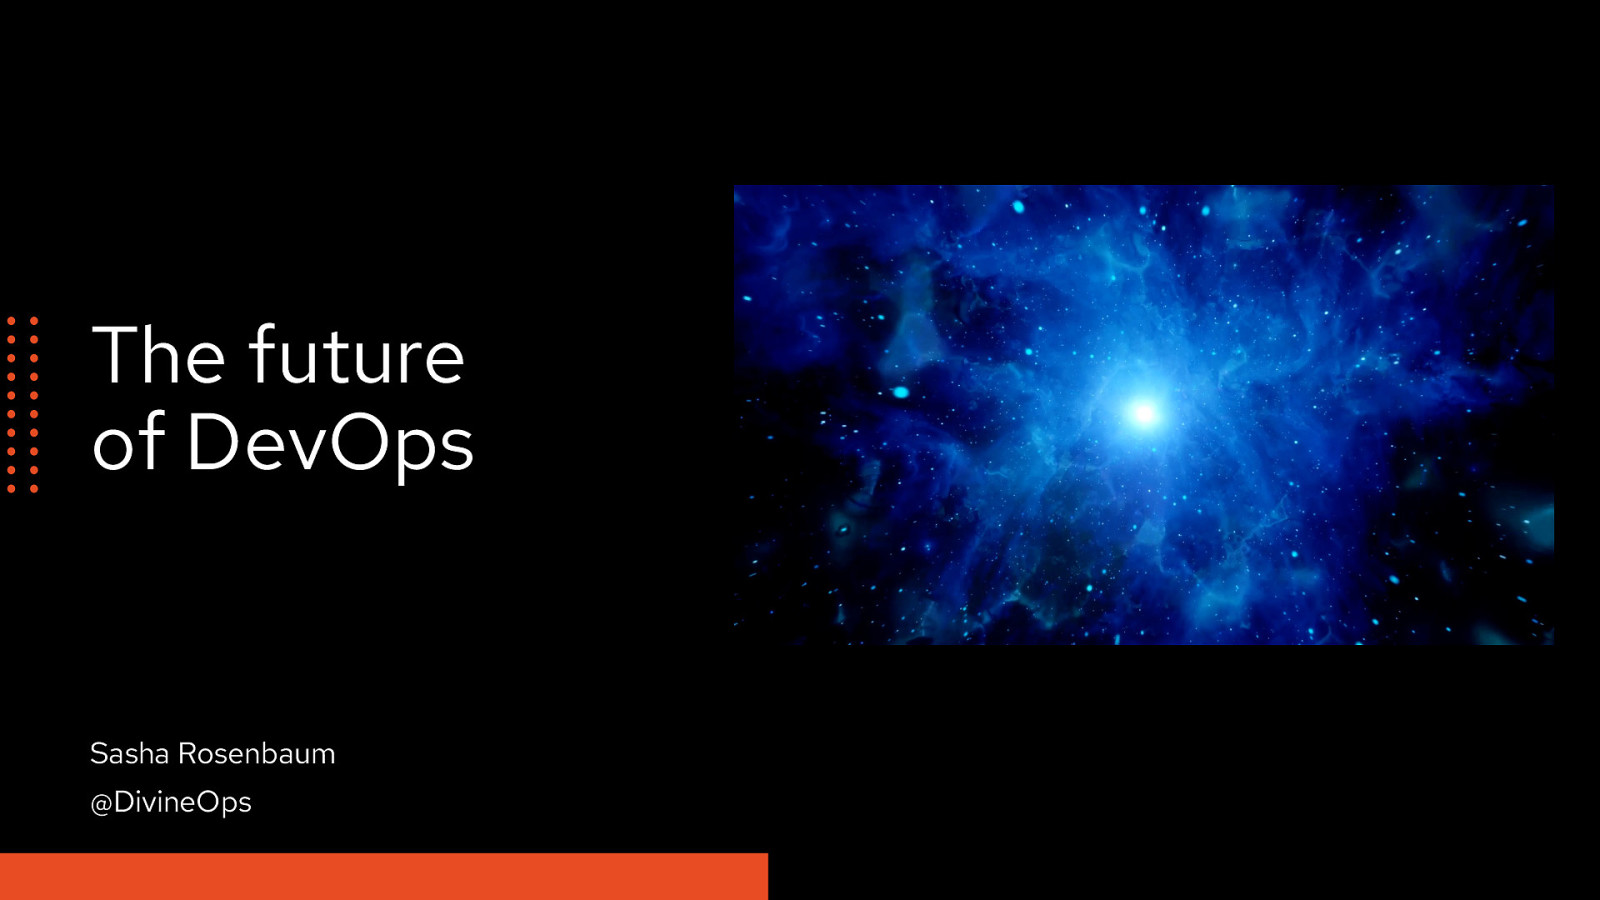 Future of DevOps by Sasha Rosenbaum